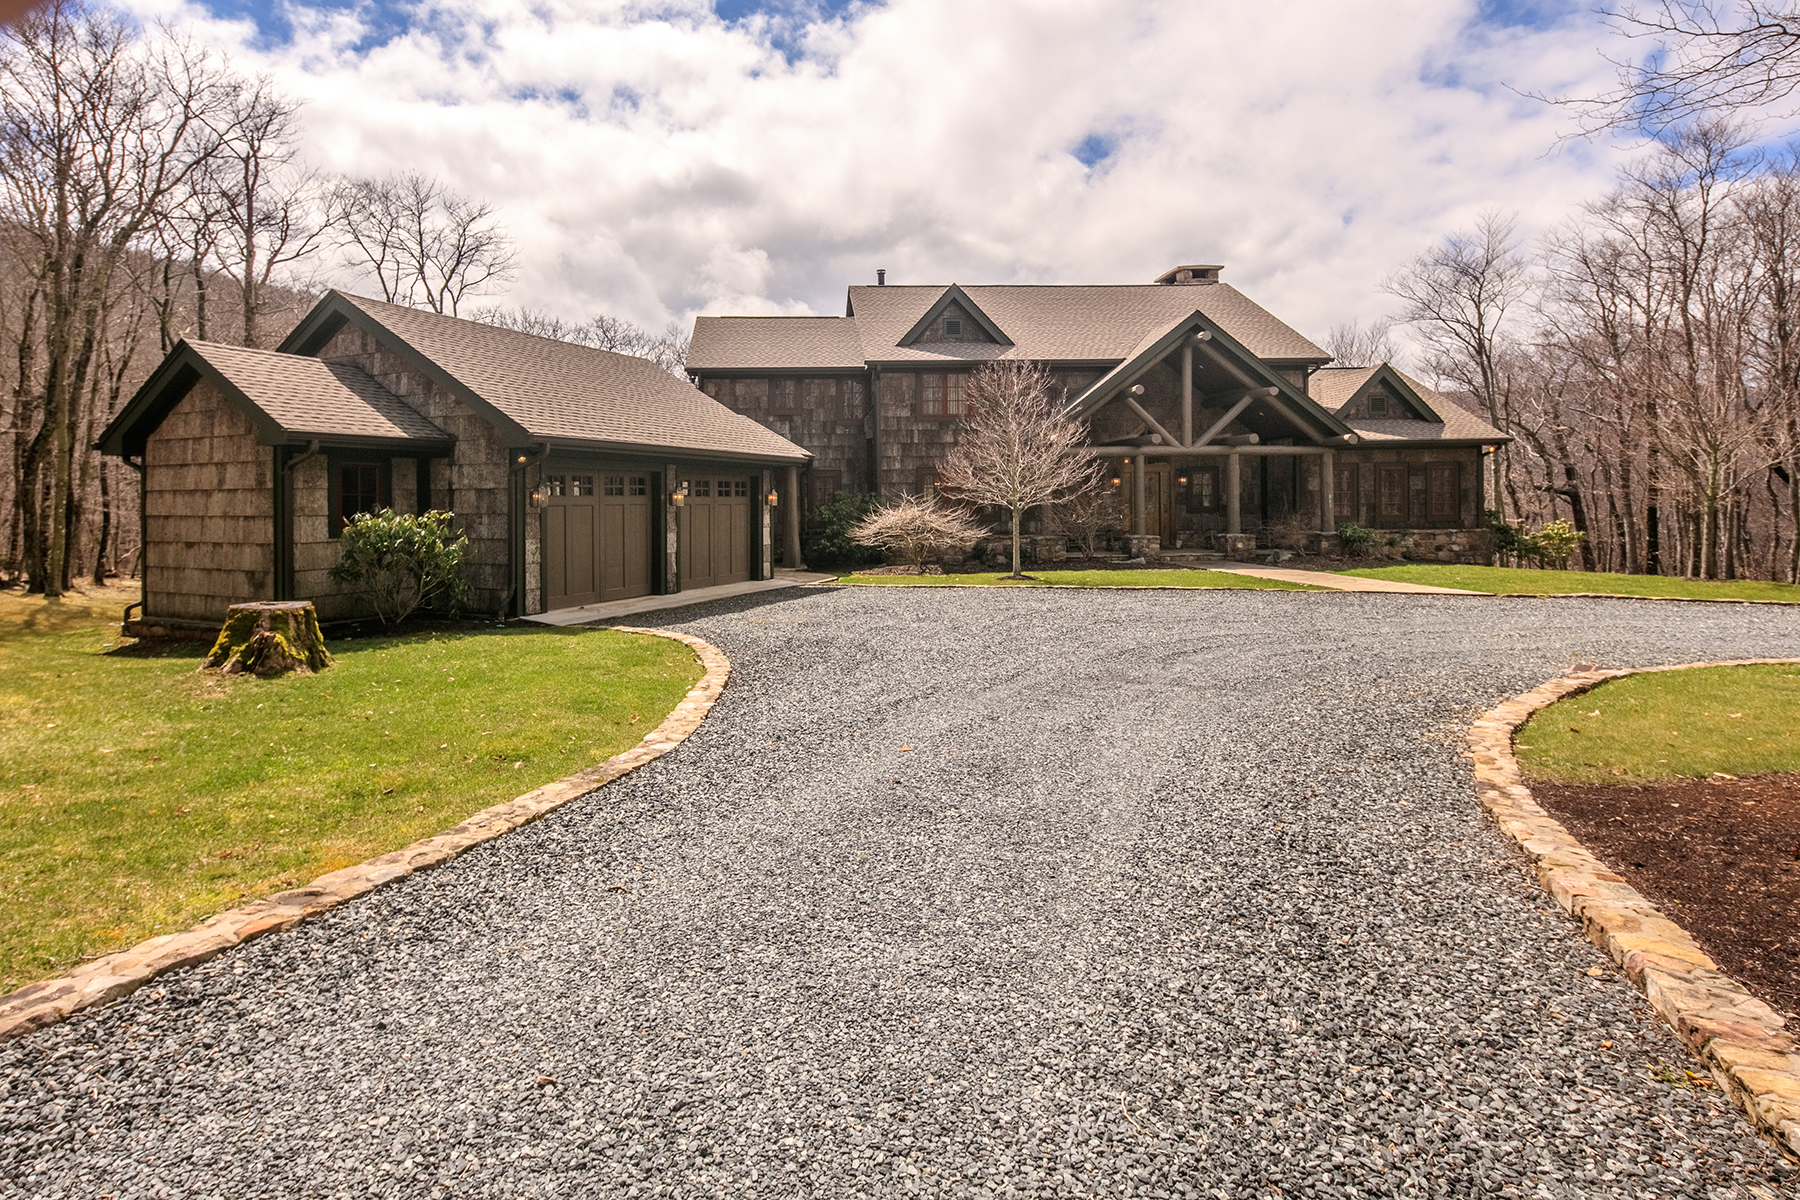 Single Family Homes for Sale at HEADWATERS OF CRESTON 888 Longhope Trail Creston, North Carolina 28615 United States